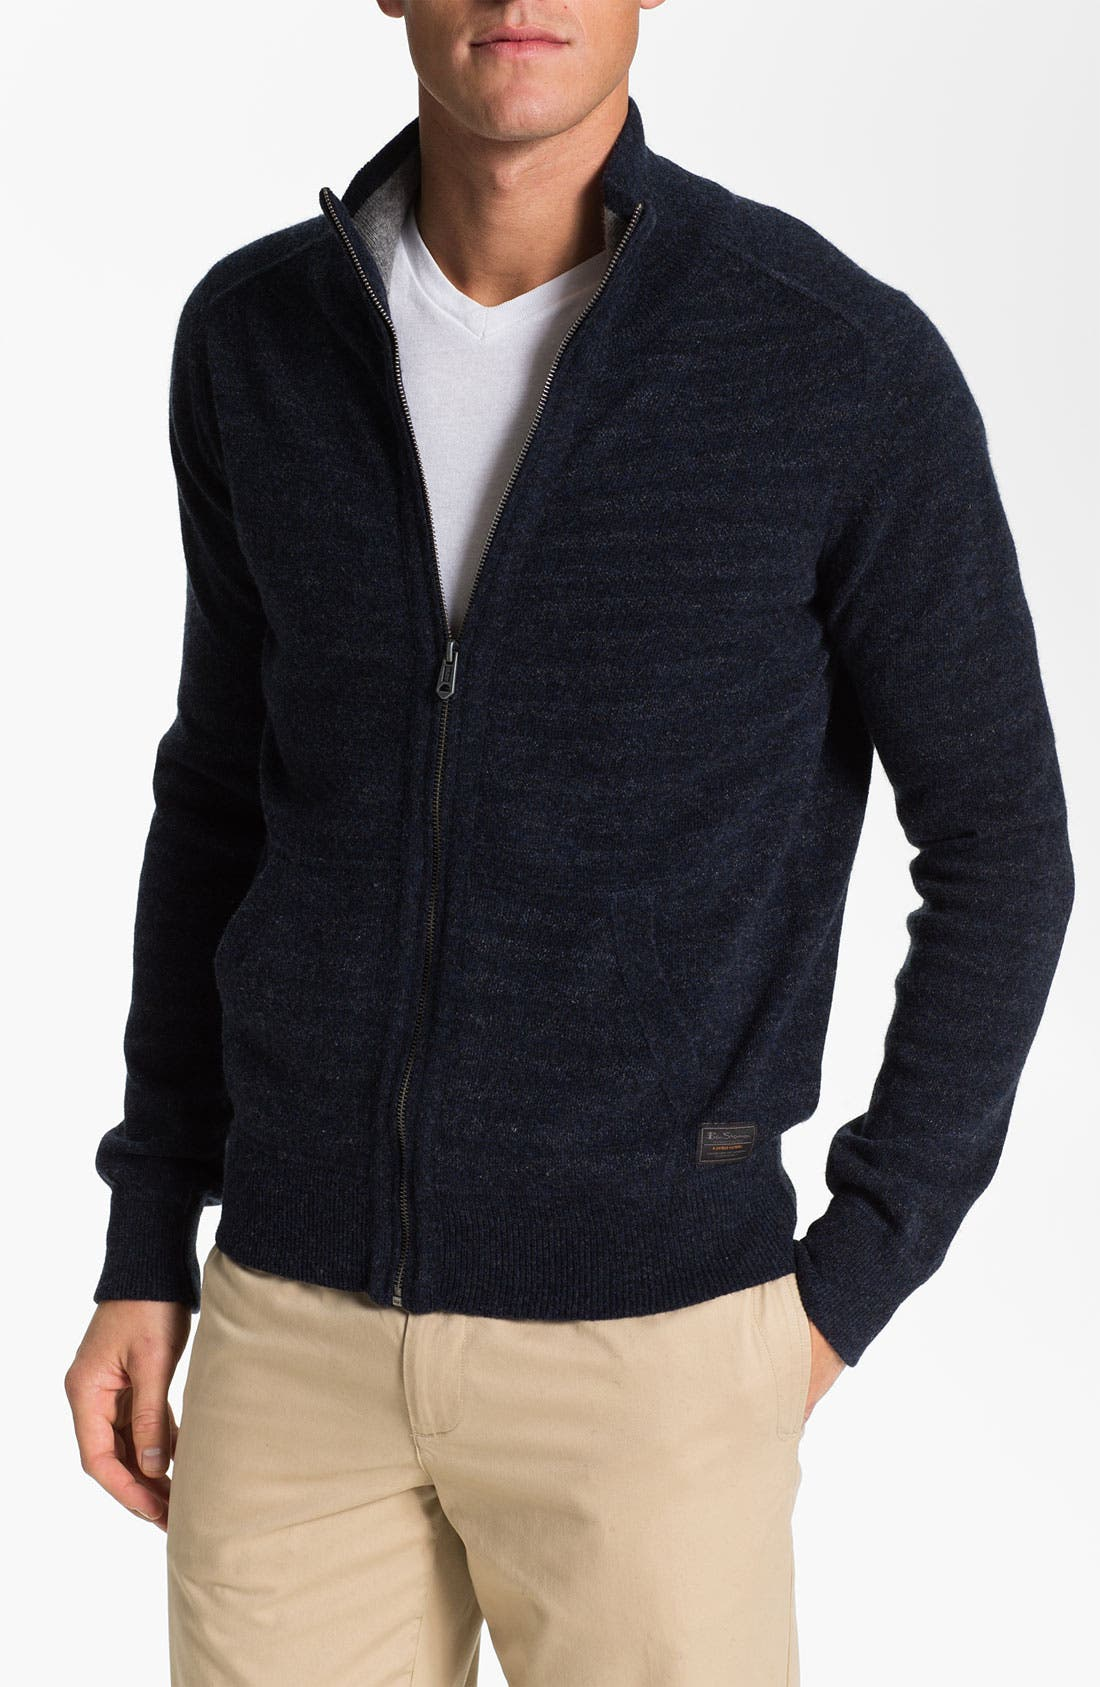 Main Image - Ben Sherman Zip Sweater